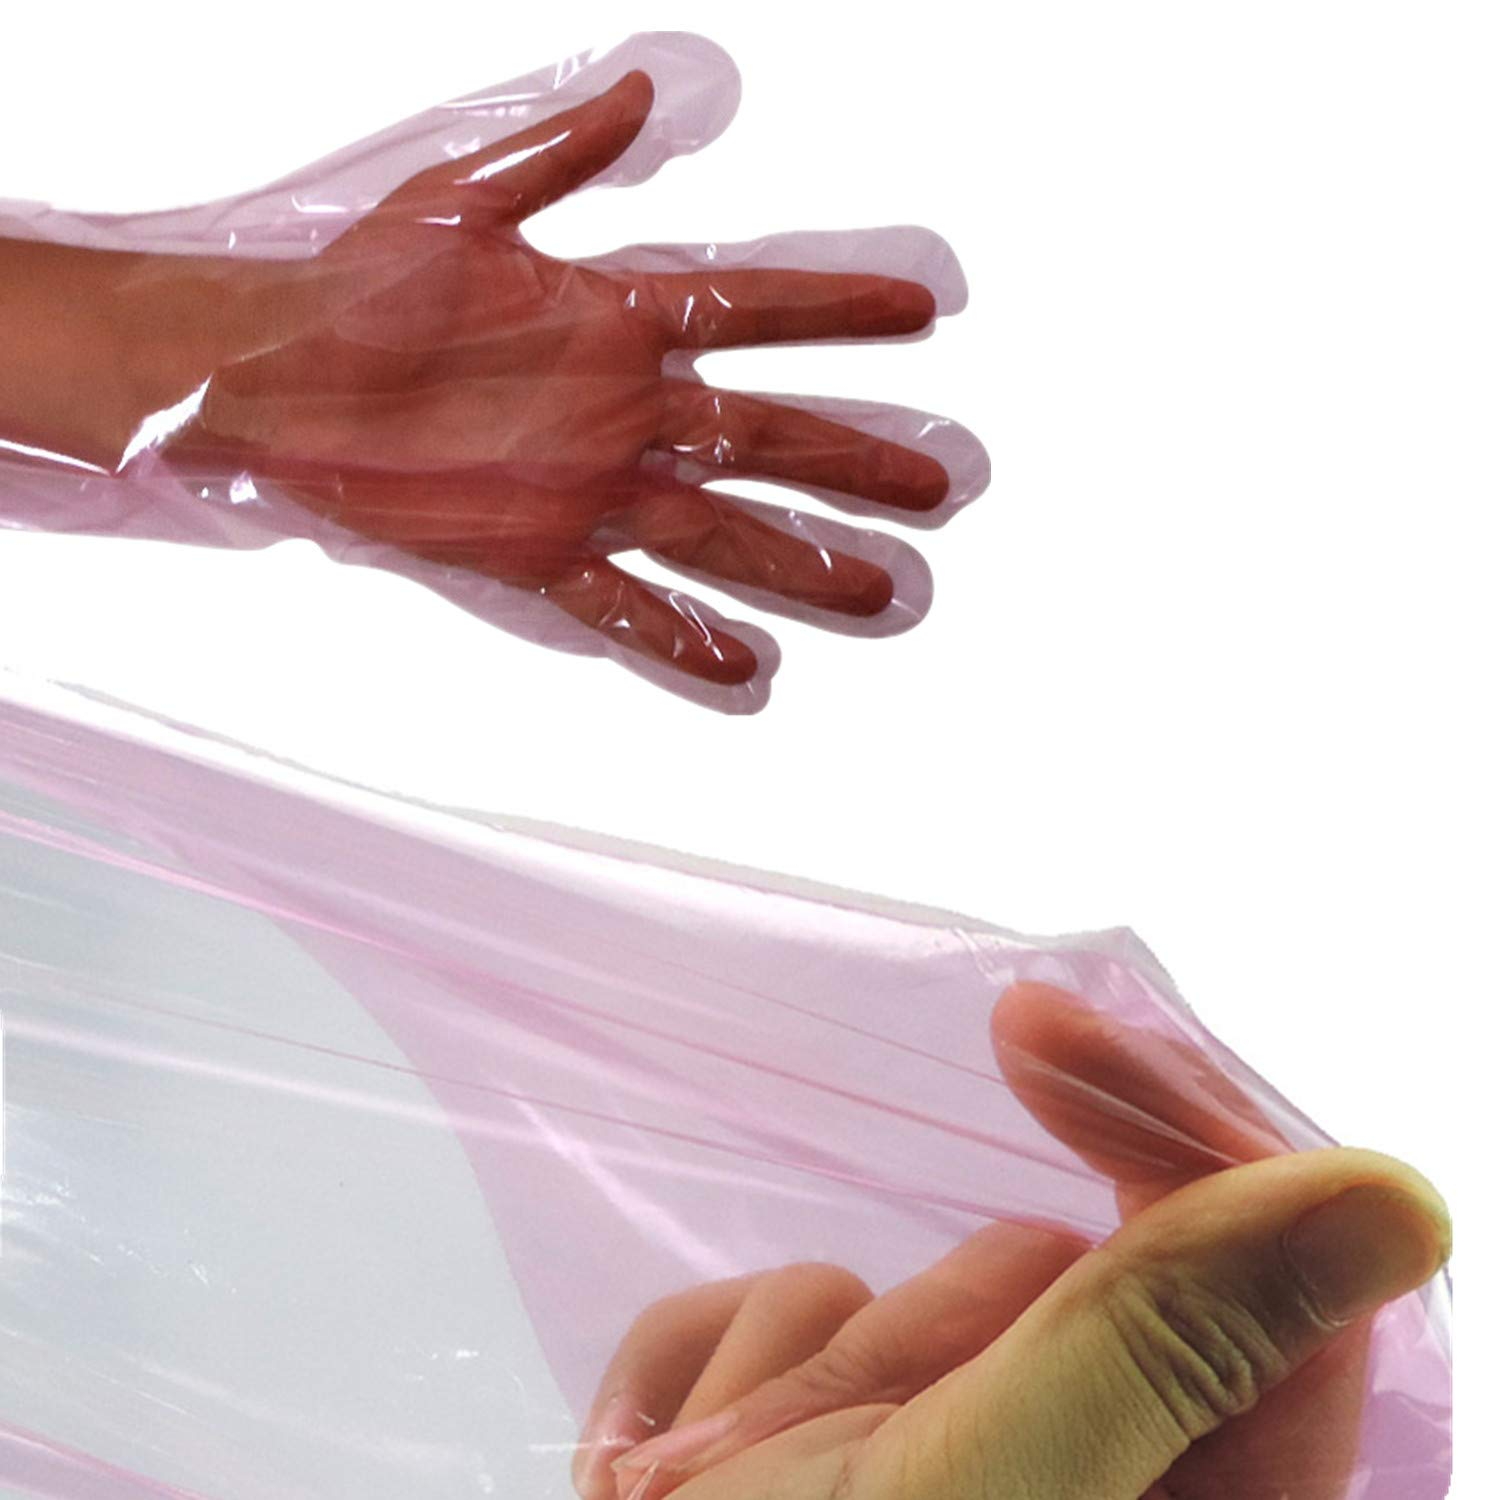 50 Pcs Disposable Soft Plastic Film Gloves Long Arm Veterinary Examination Artificial Insemination Glove by PPX by PPX (Image #3)